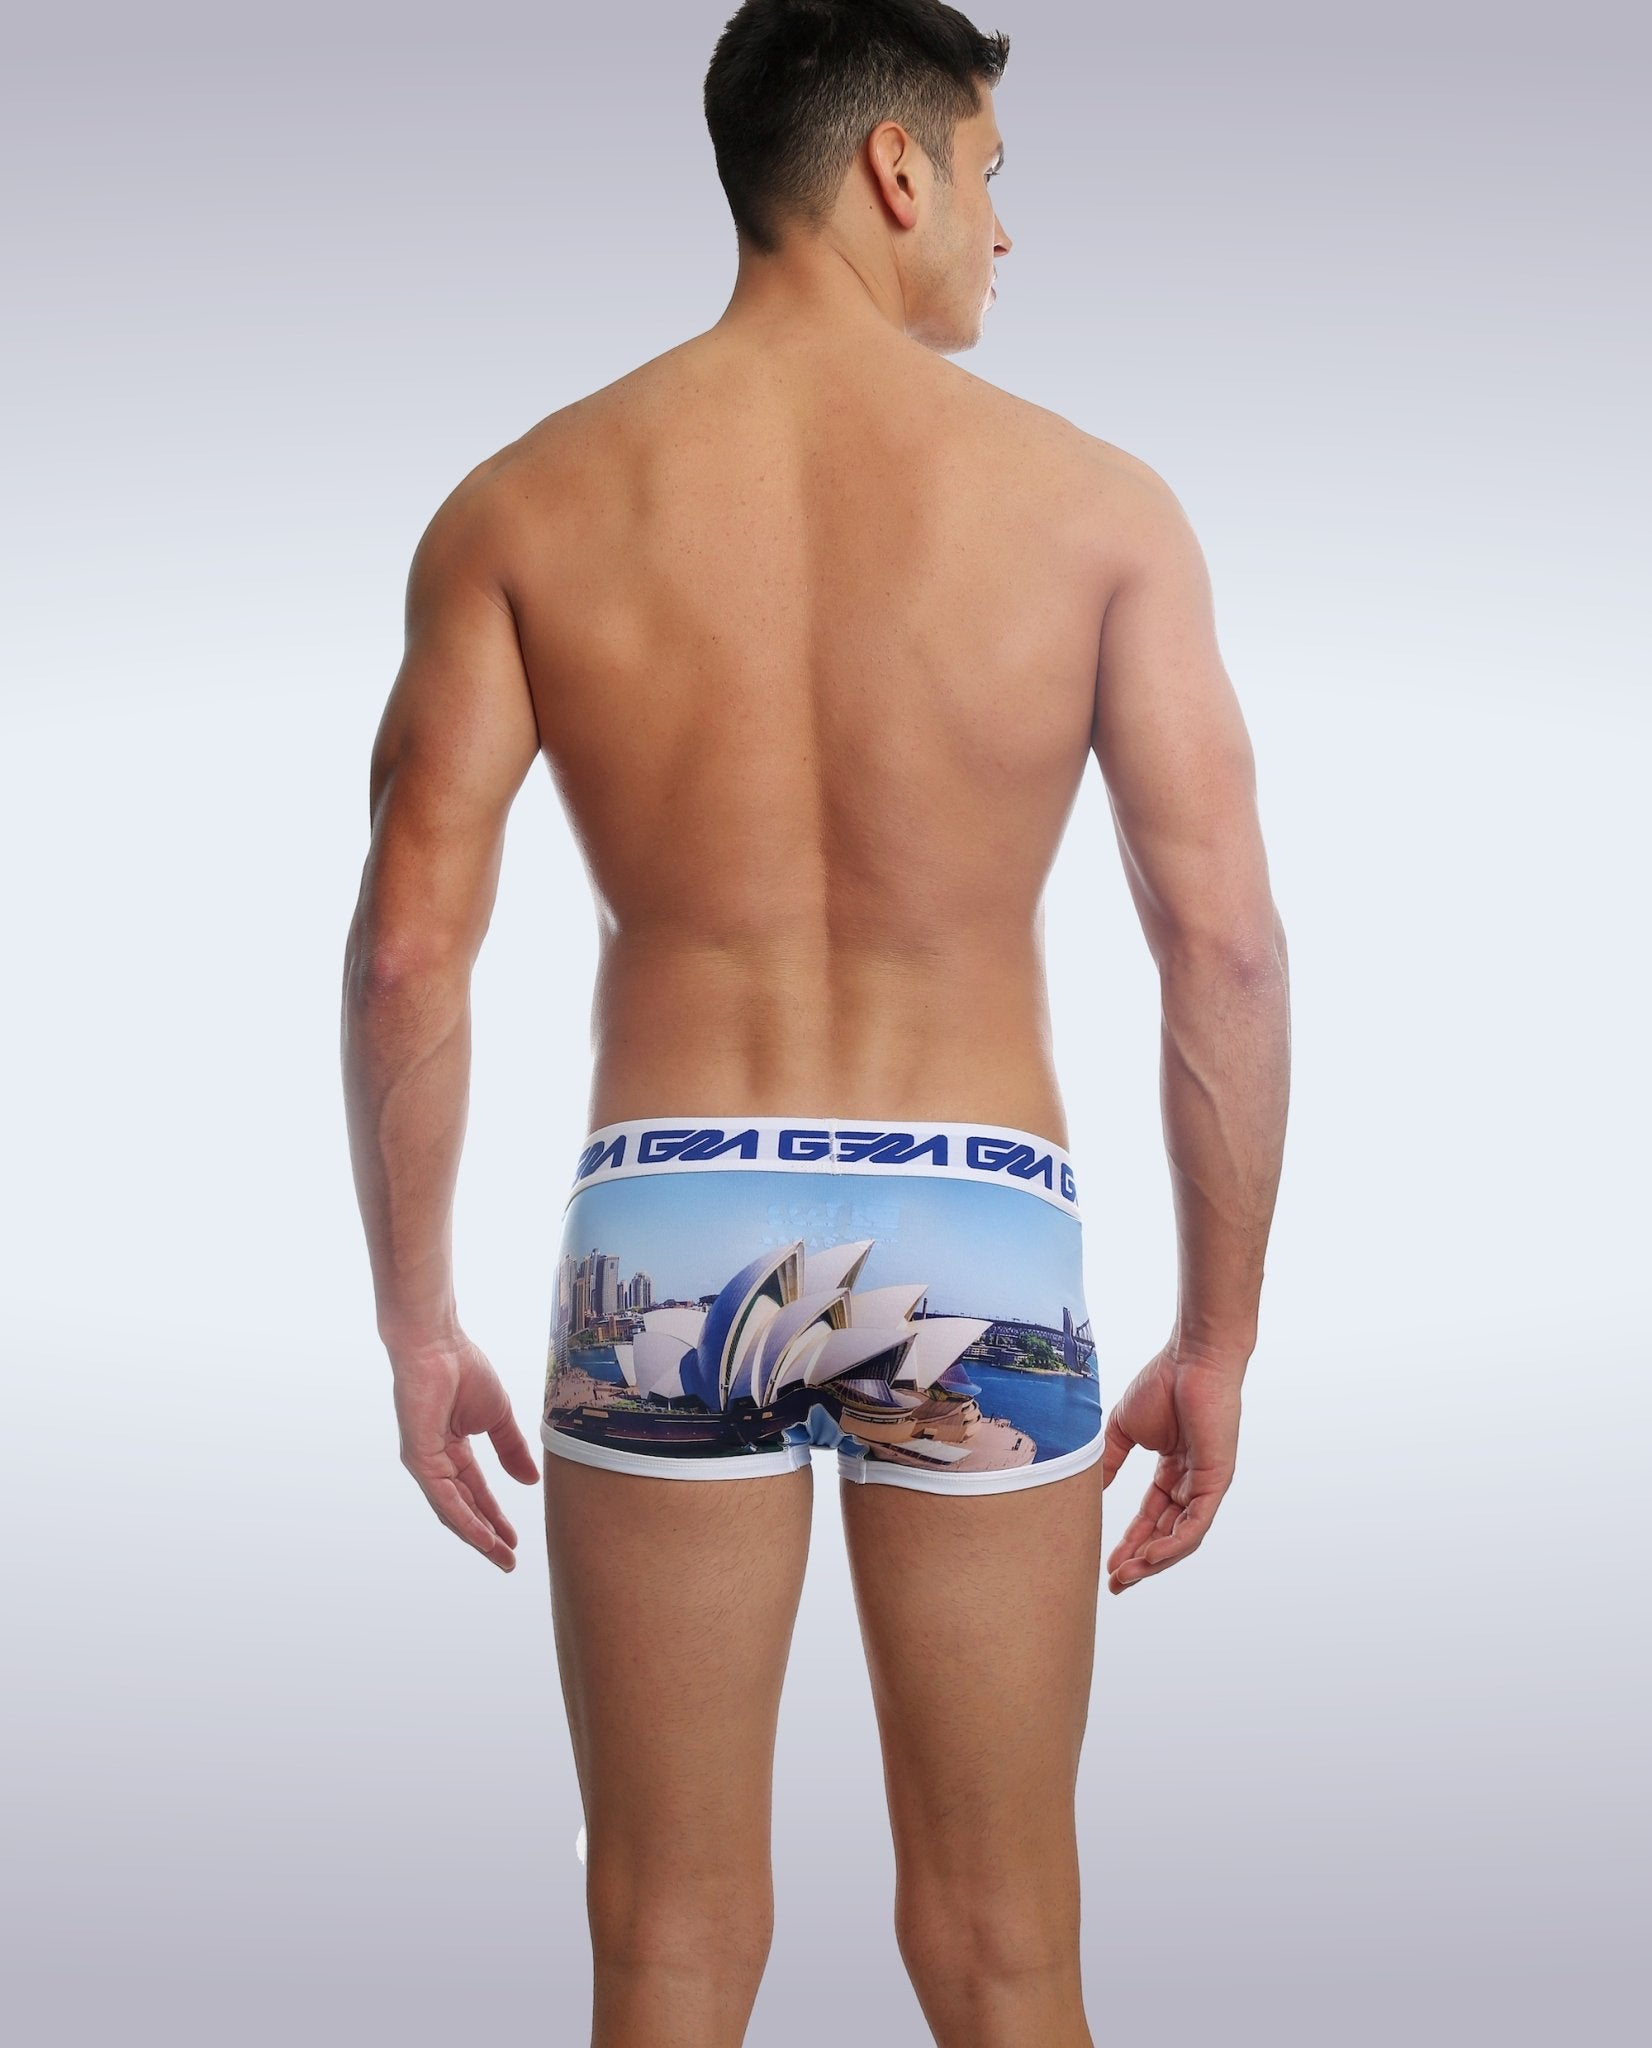 Sydney Trunks - Garçon Underwear sexy men's underwear Trunks Garçon Underwear